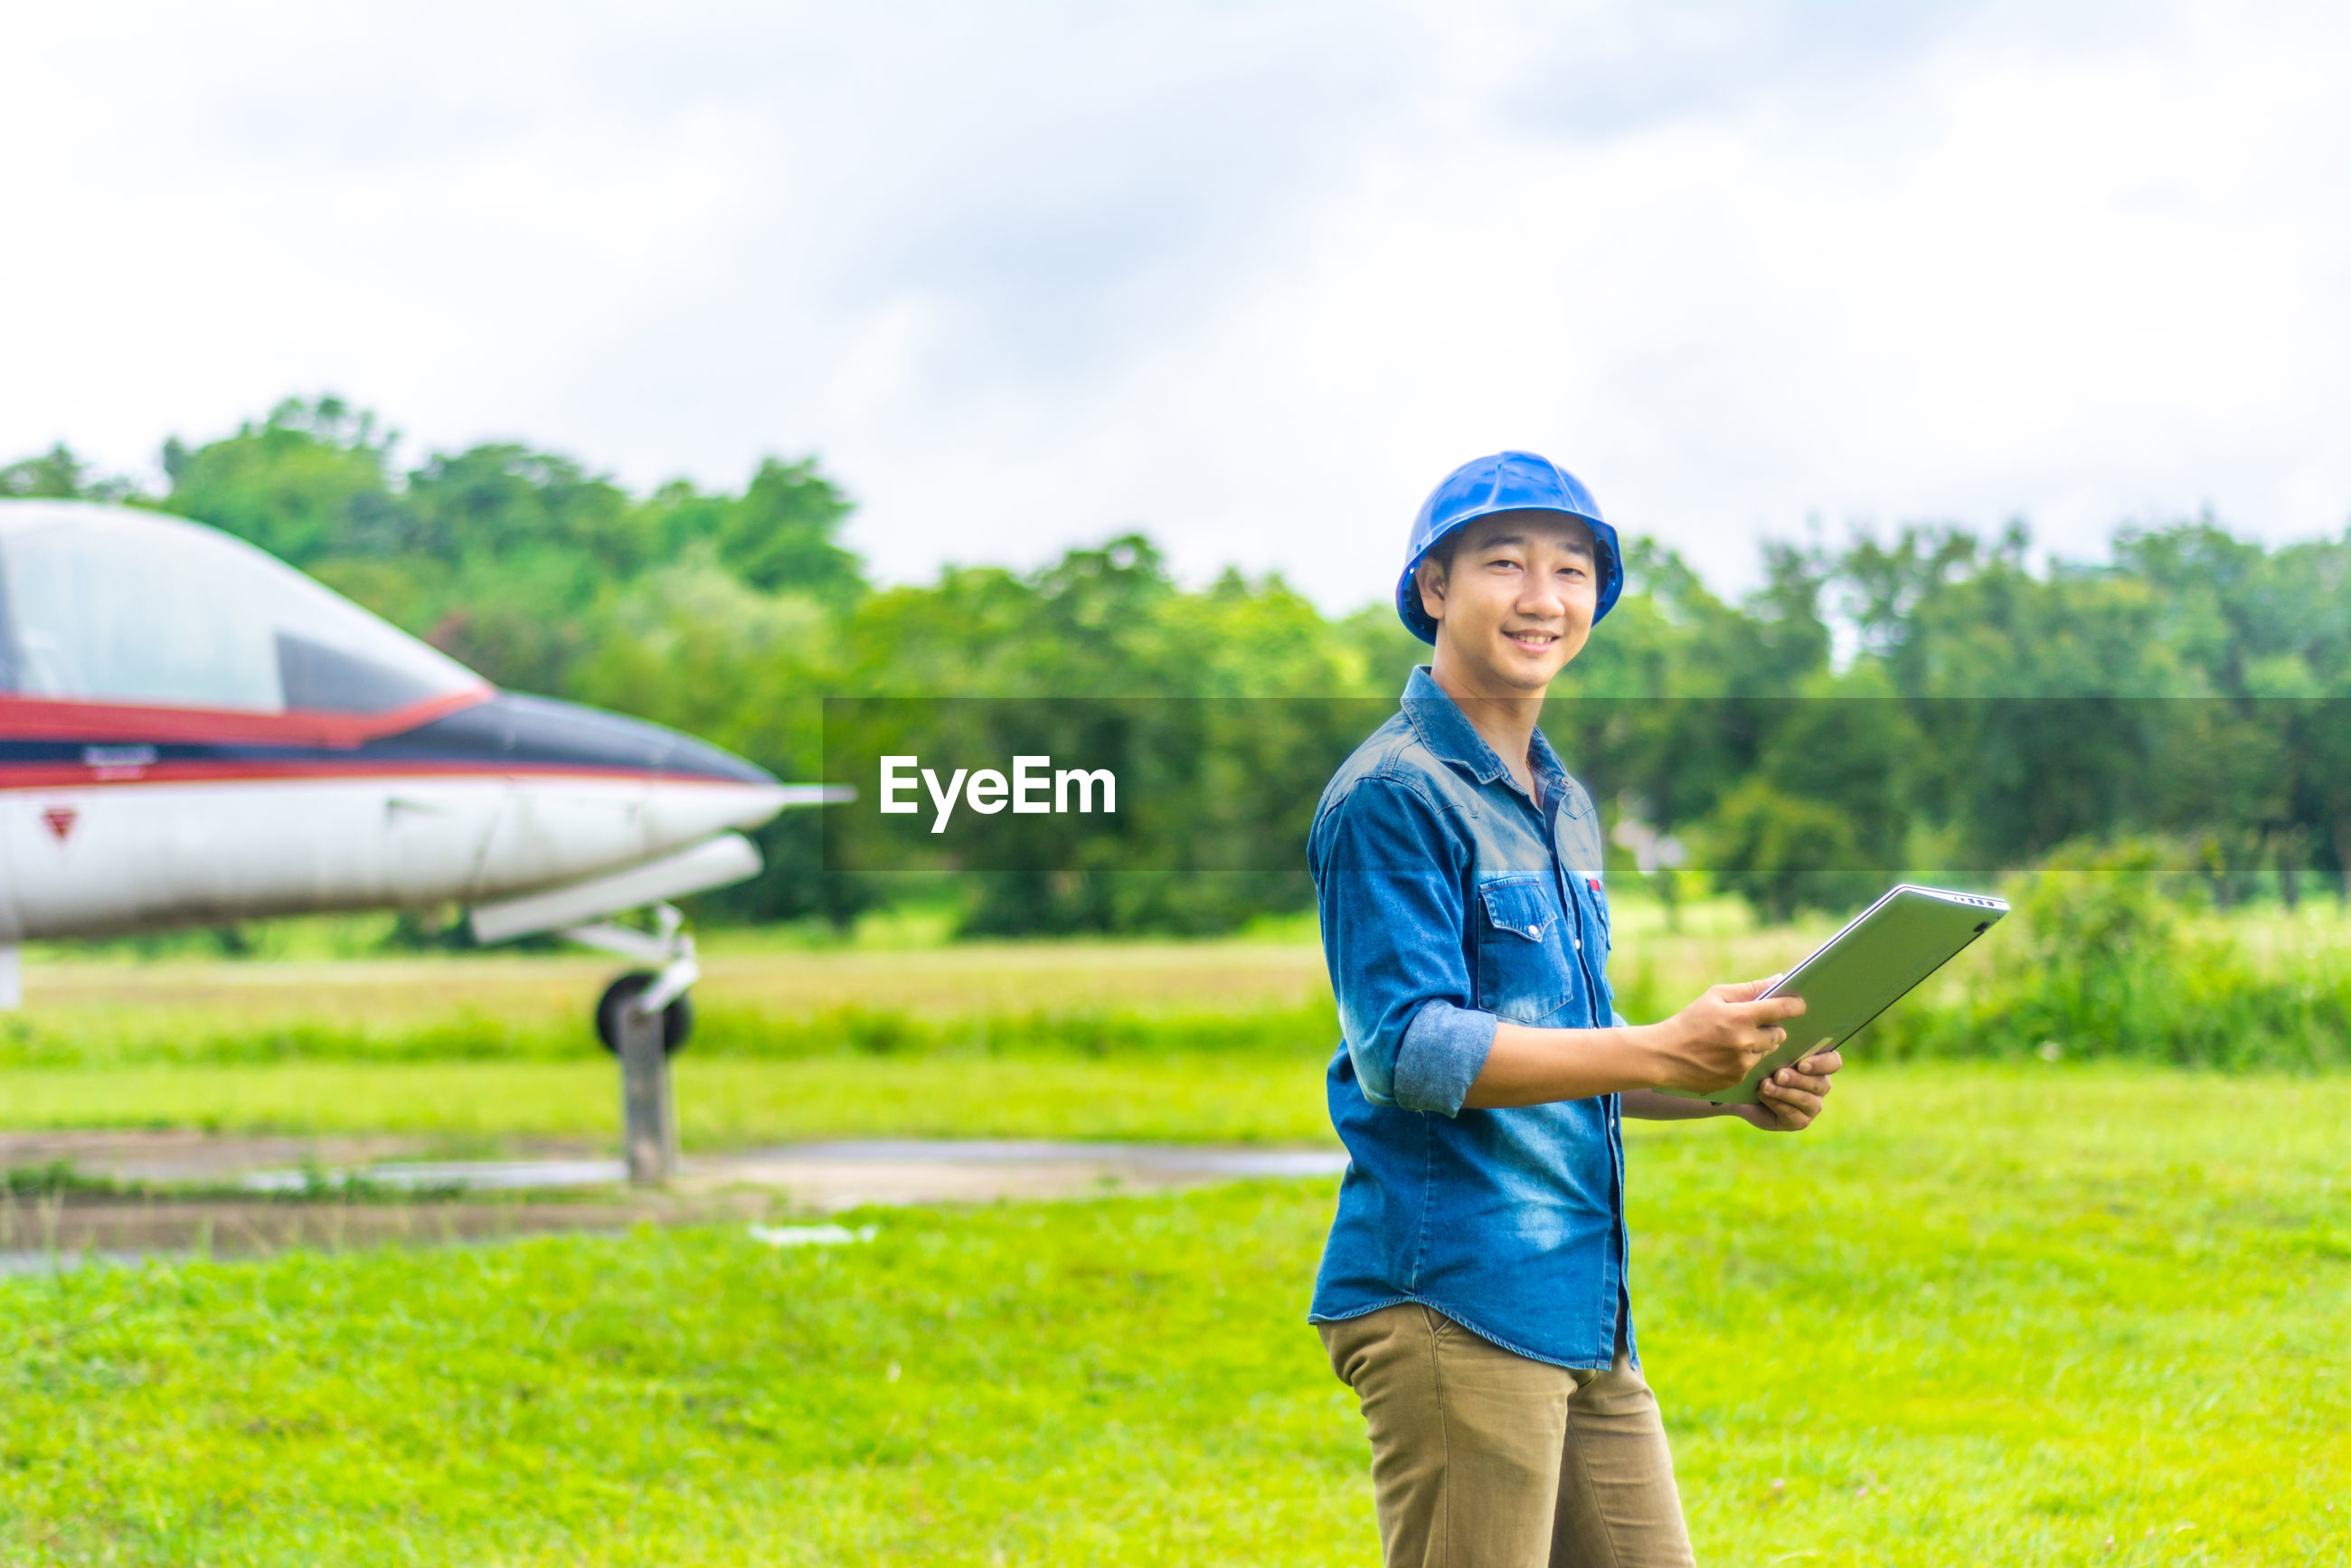 Portrait of smiling airplane mechanic standing against airplane on land